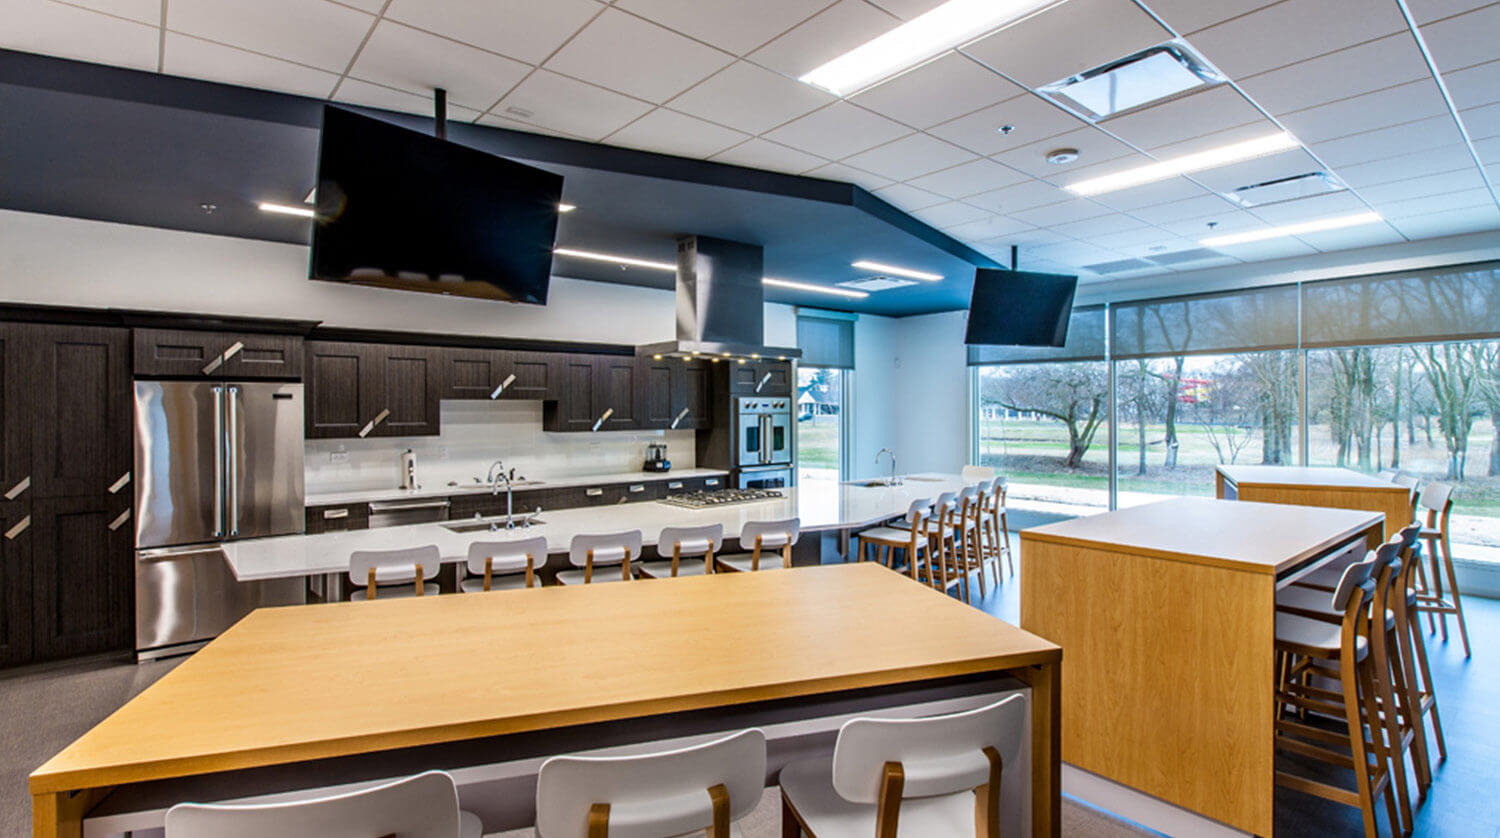 Mundelein Dunbar Recreation Center nutrition classroom 2